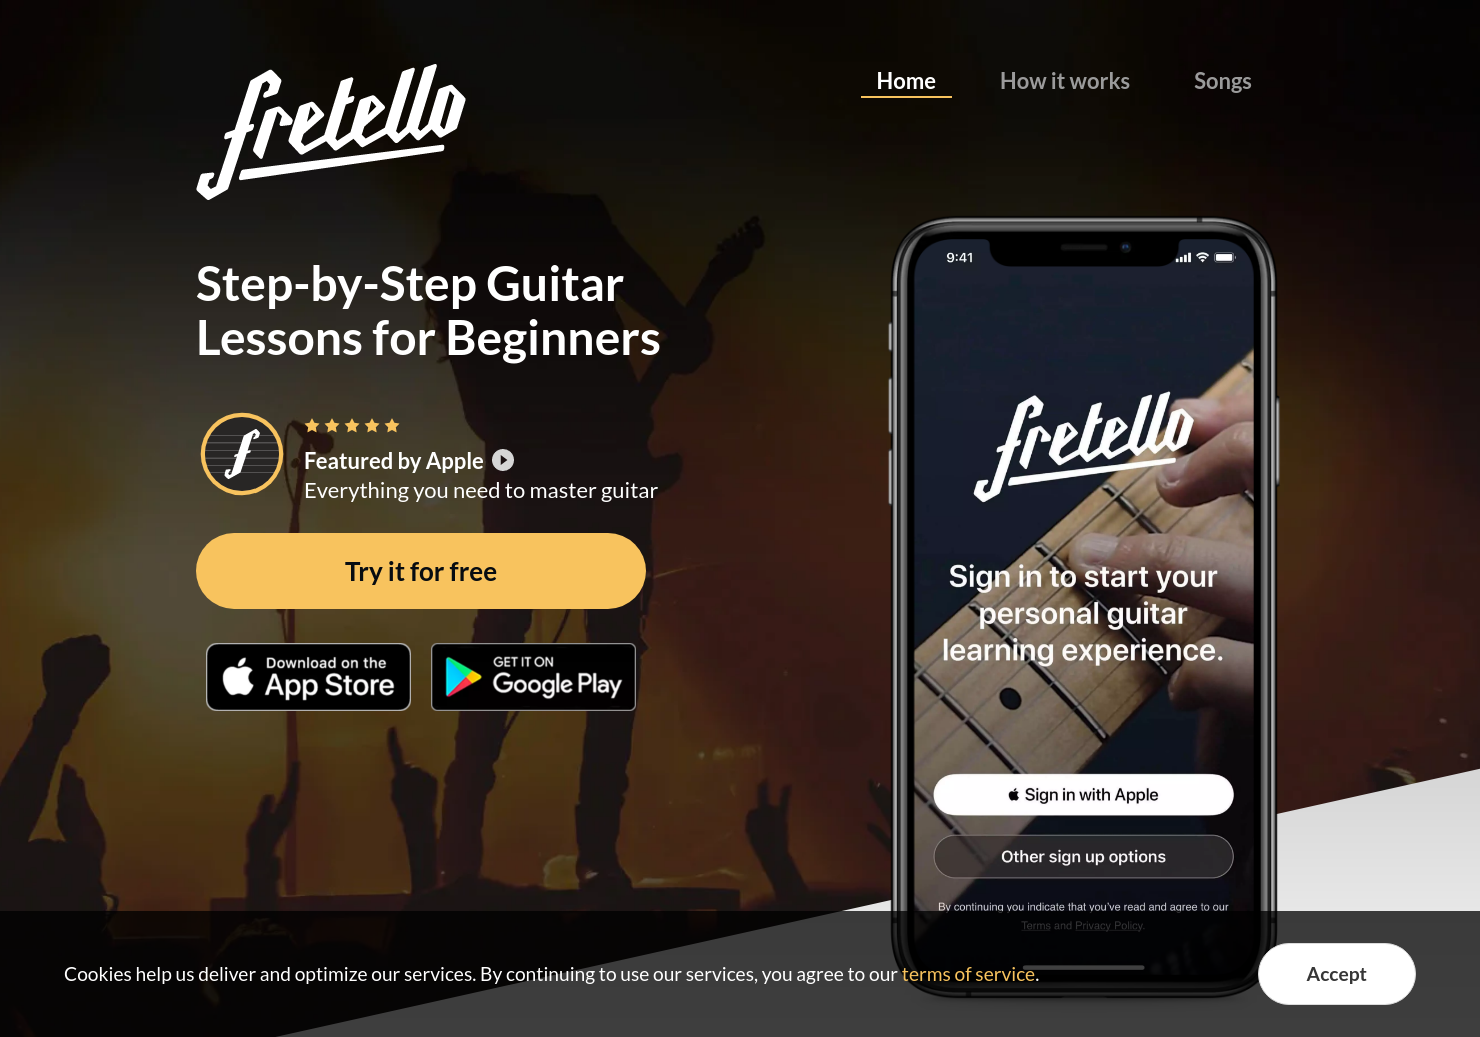 Fretello